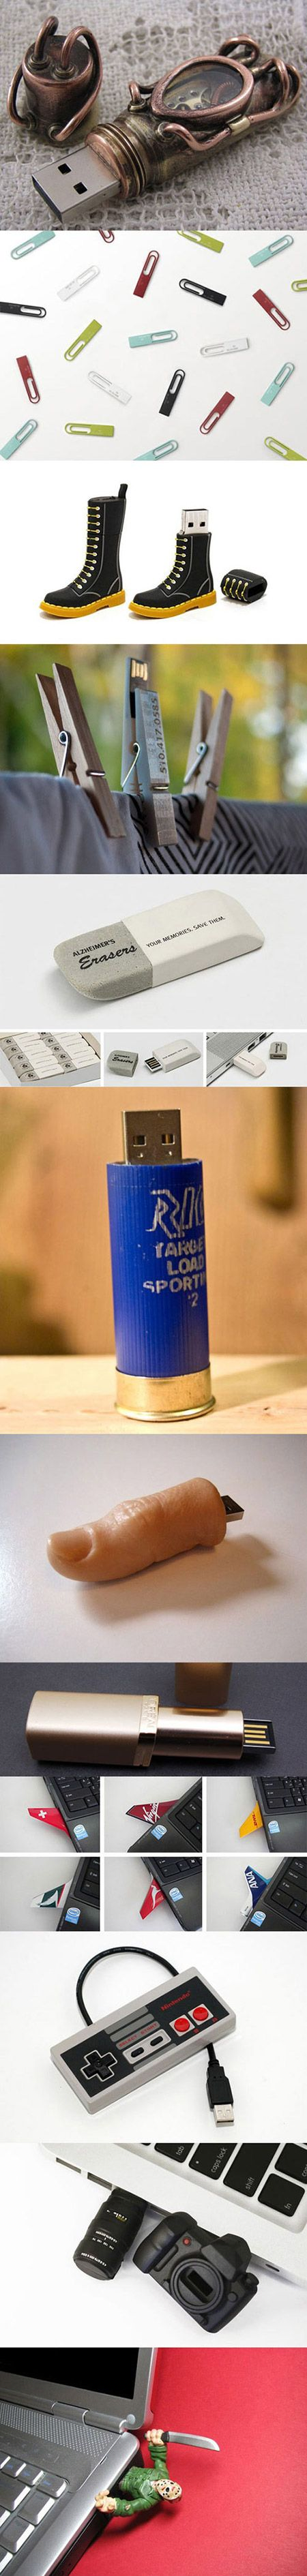 Here are some unusual USB flash drives that geeks would love.